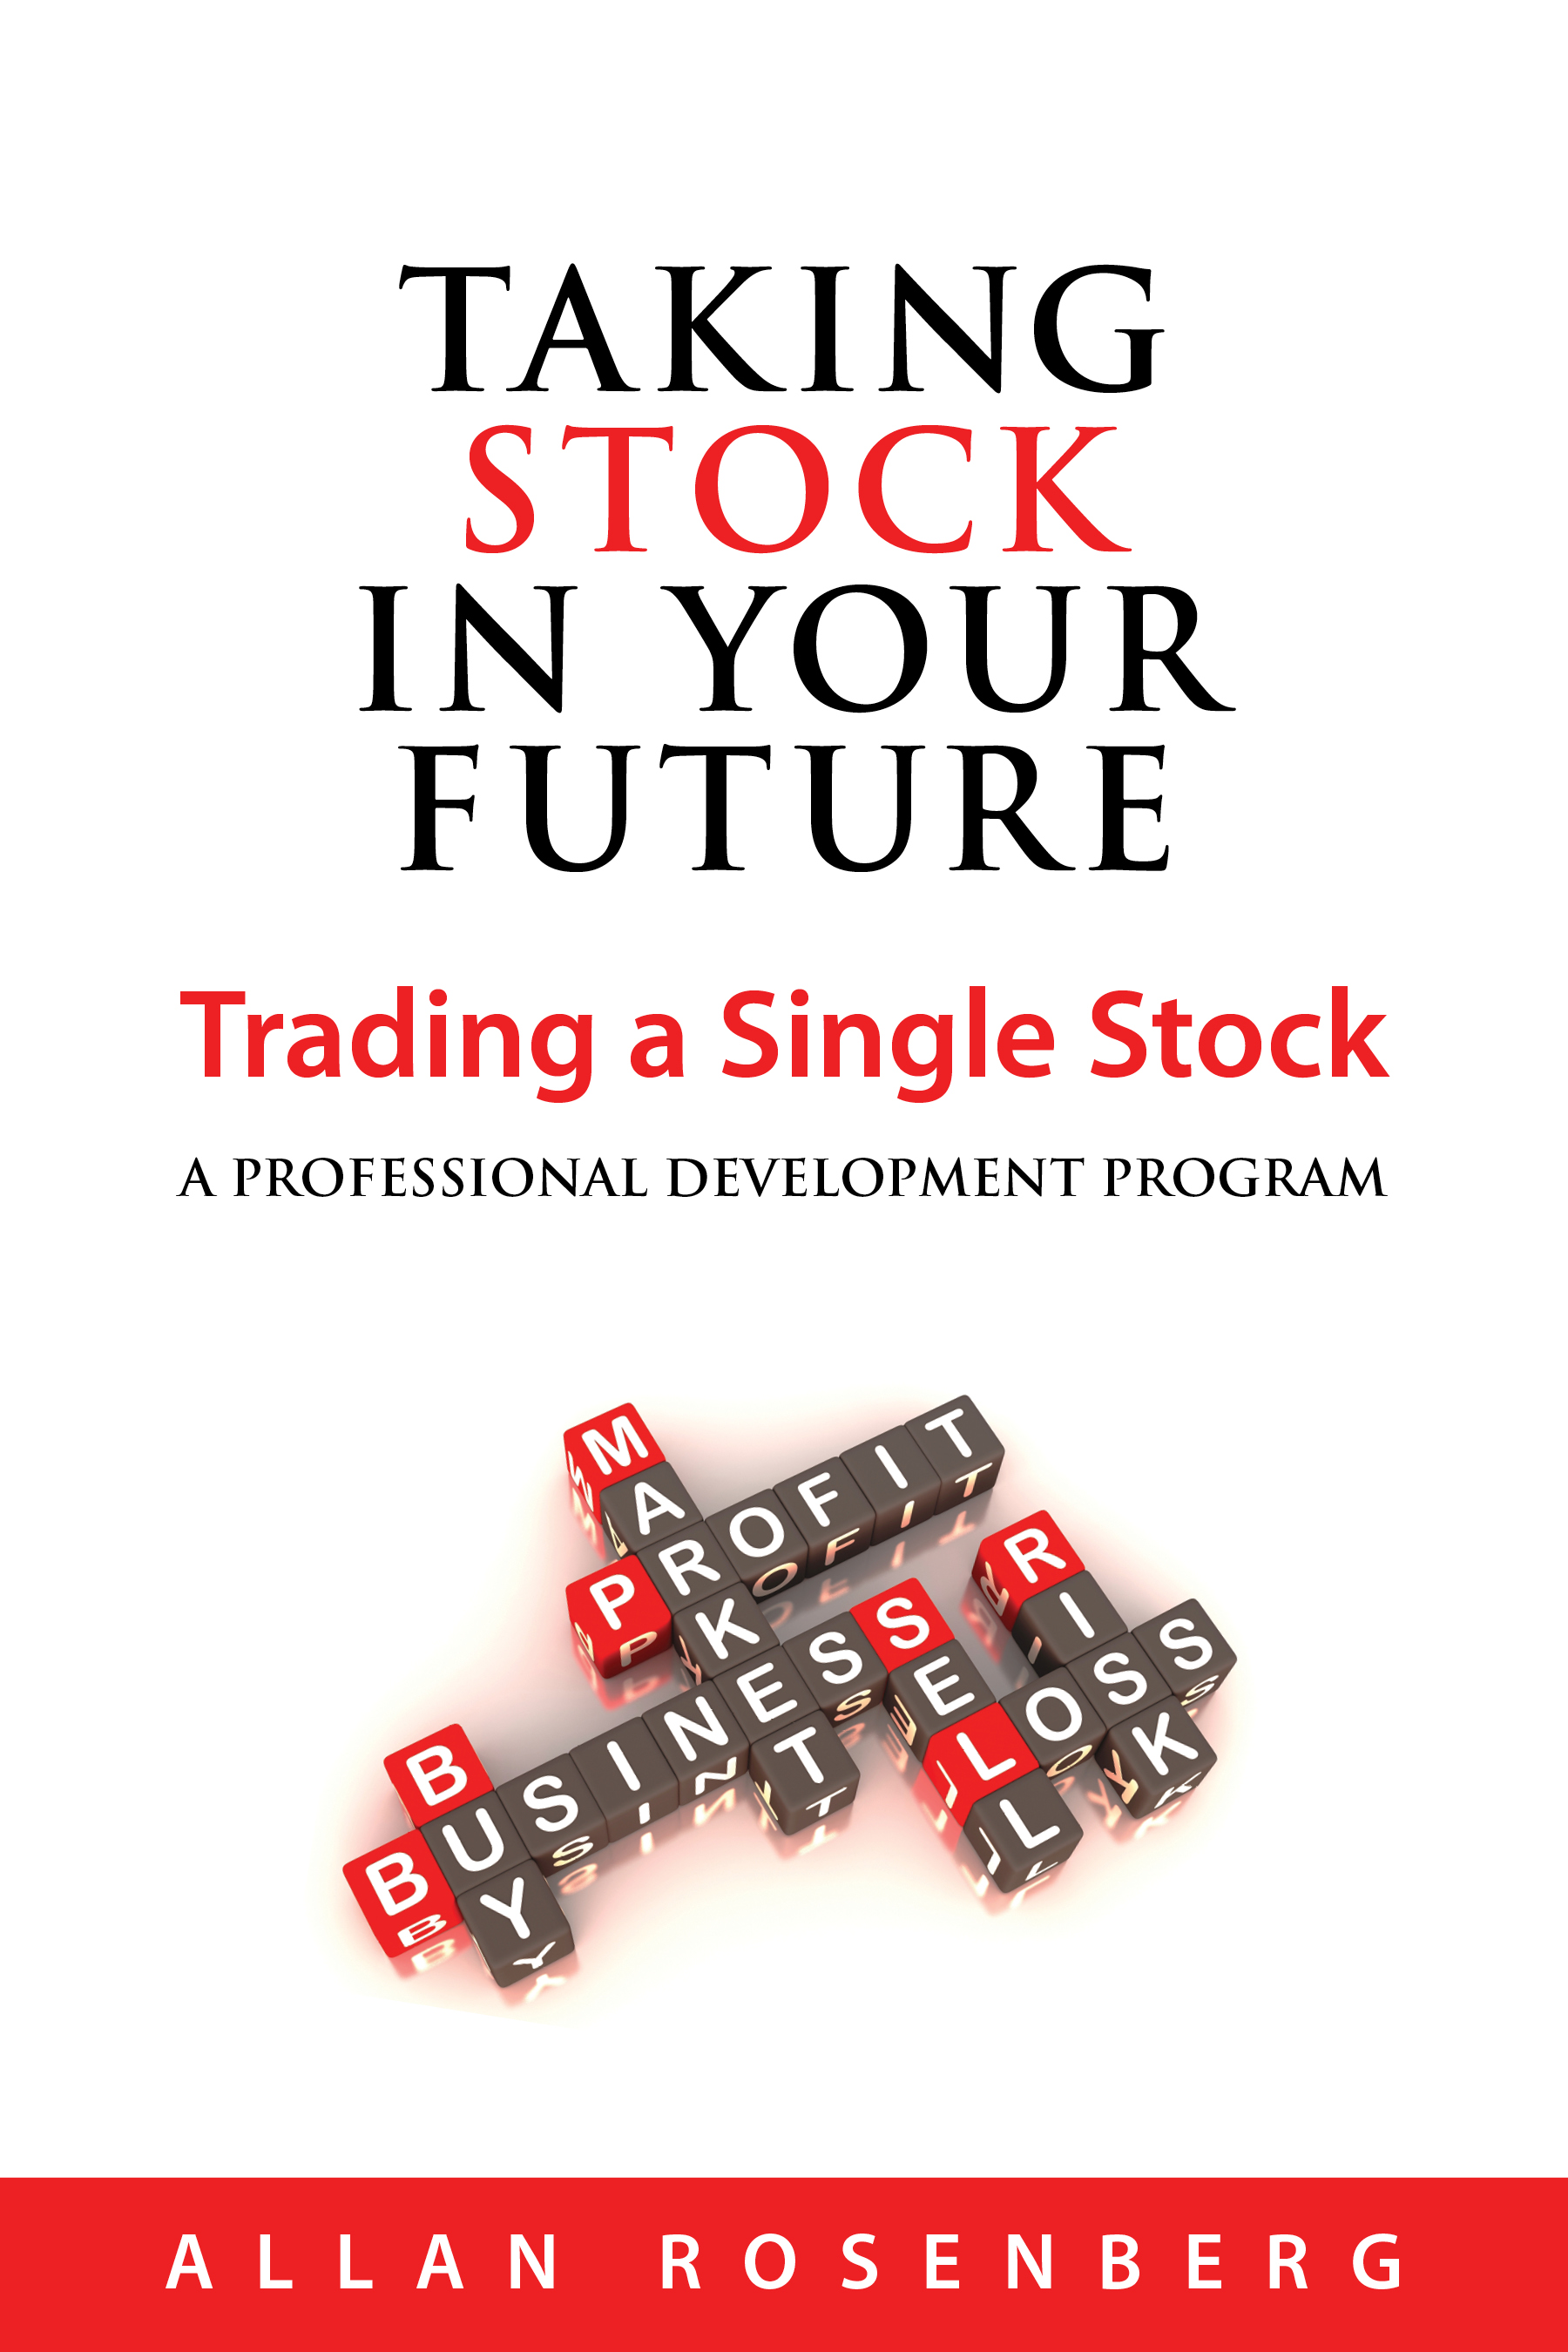 Taking Stock in Your Future: Trading a Single Stock